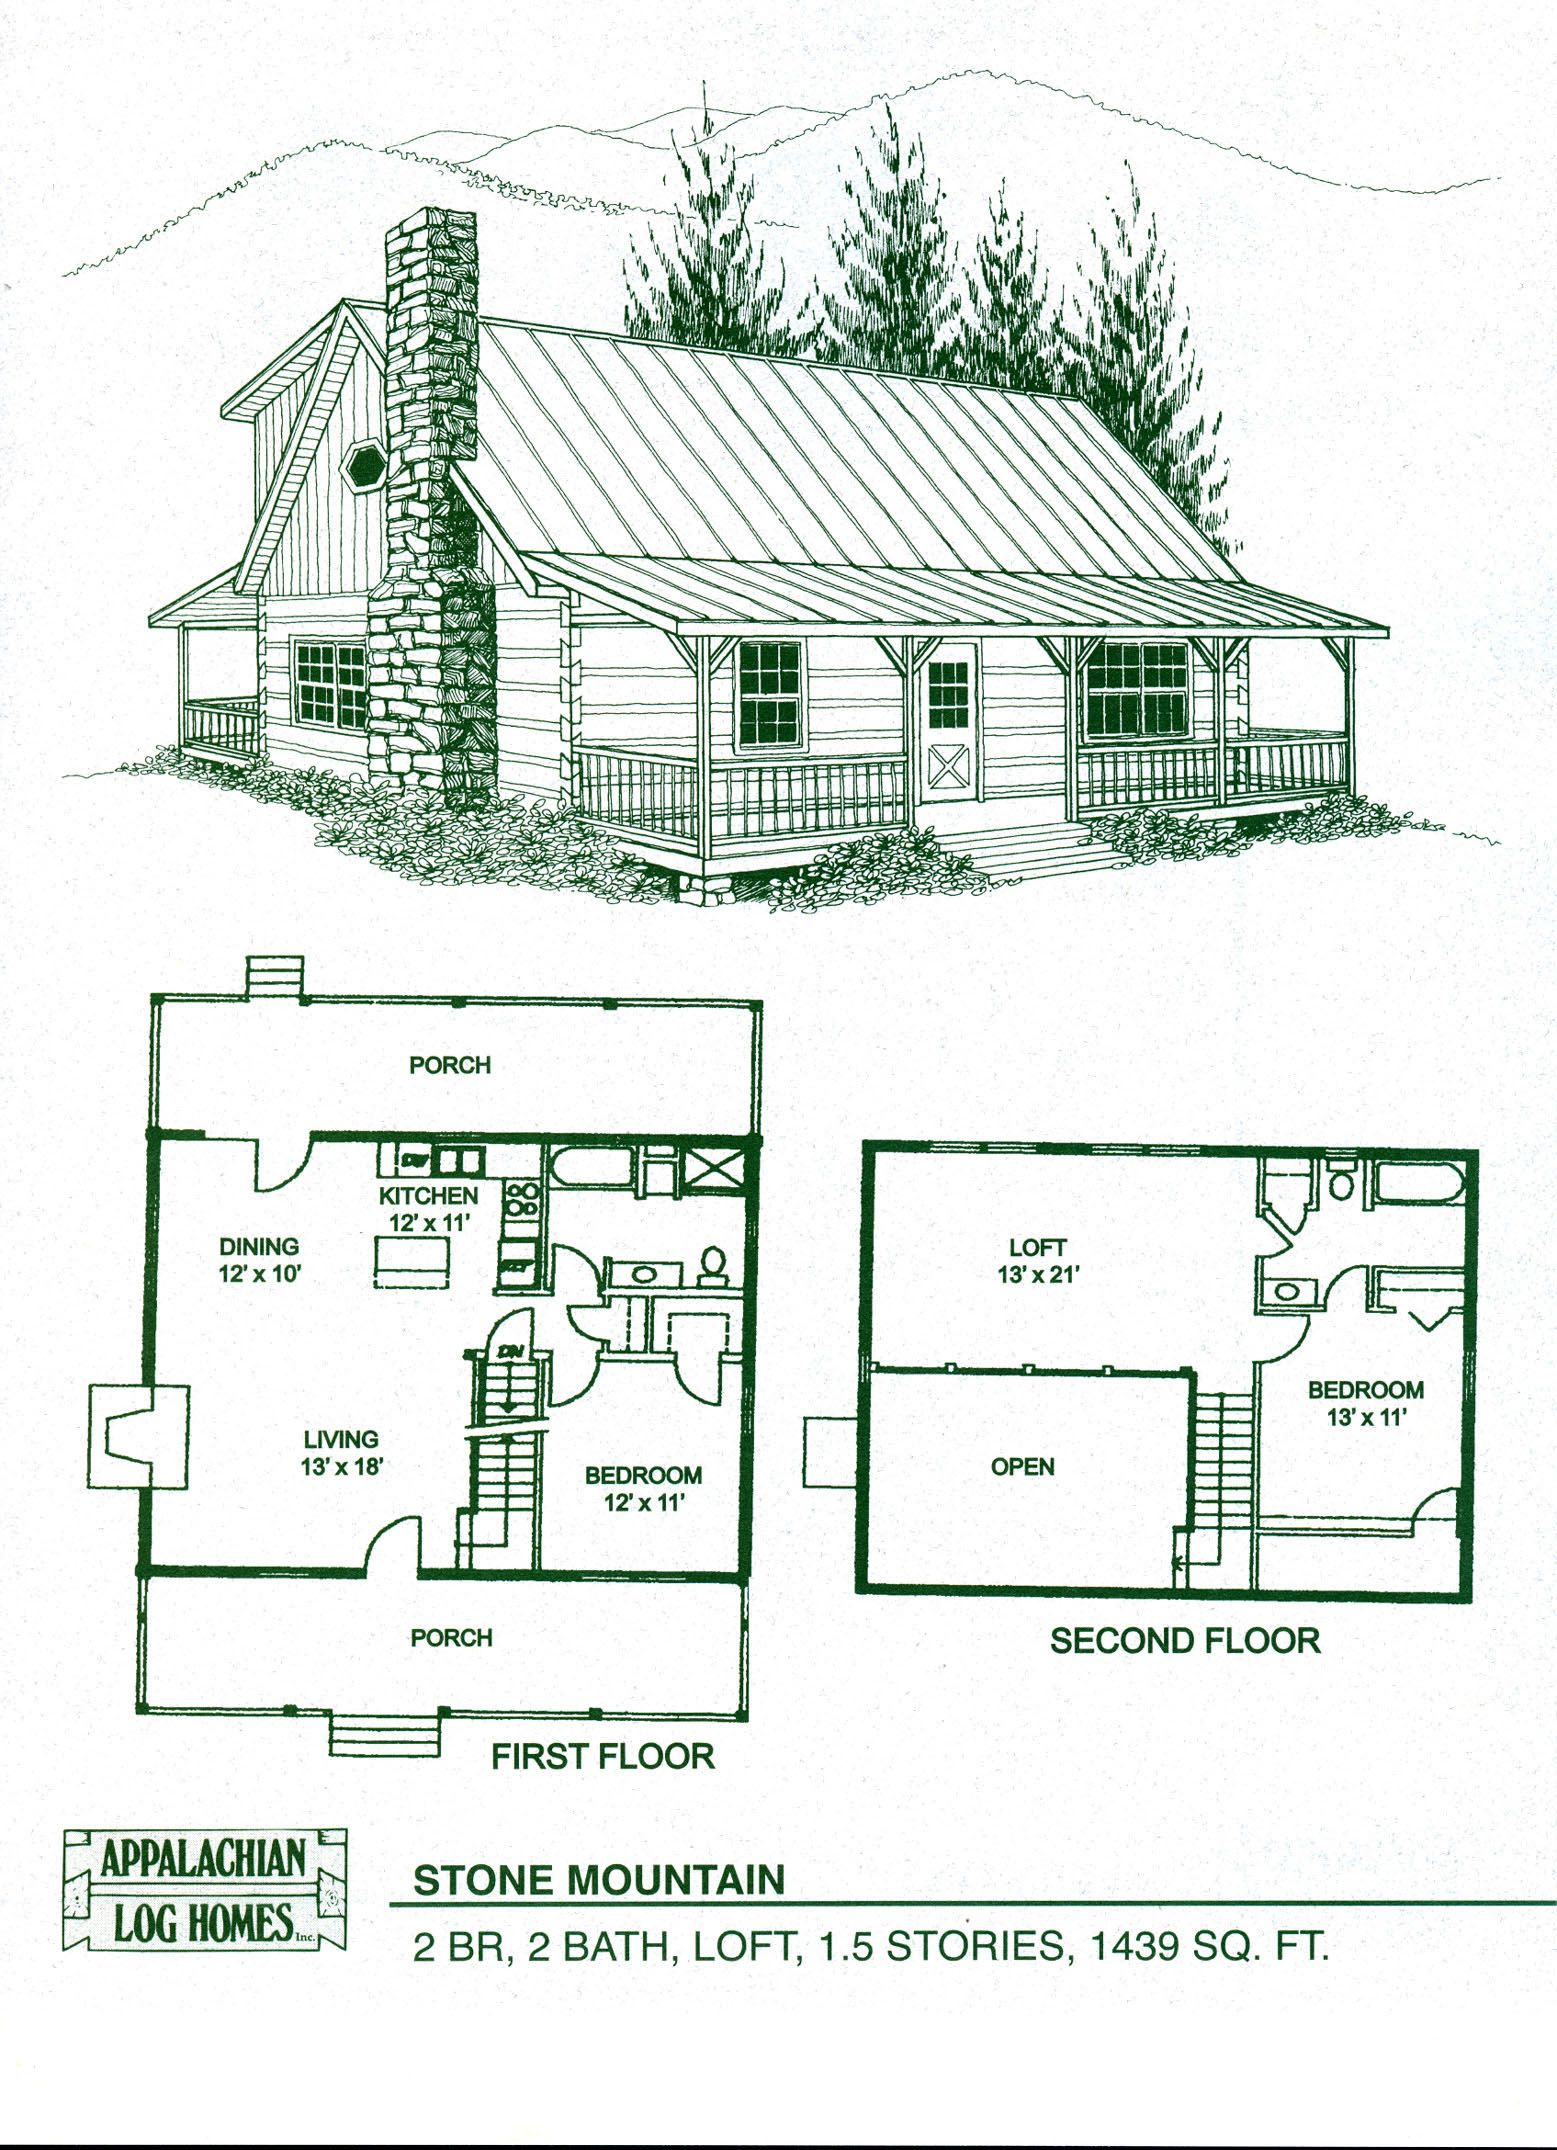 Pin By Susan Kliesen On My Dream Cabin Cabin House Plans Log Cabin Floor Plans Log Cabin Plans